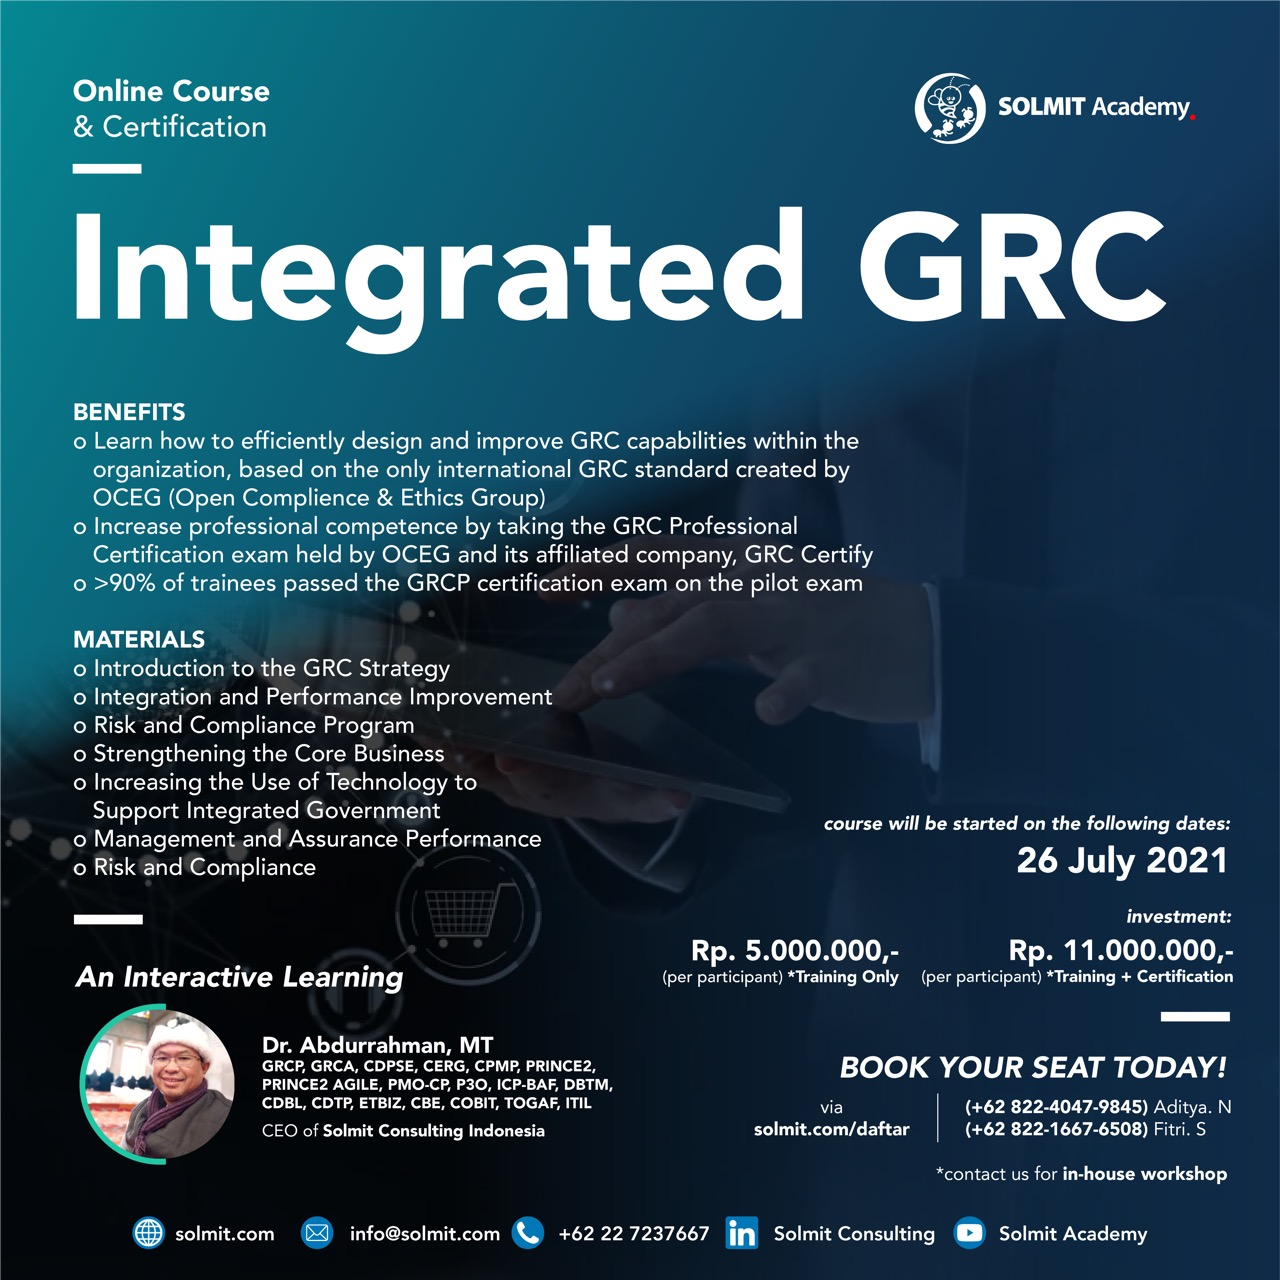 Online Course & Certification -  Integreted GRC